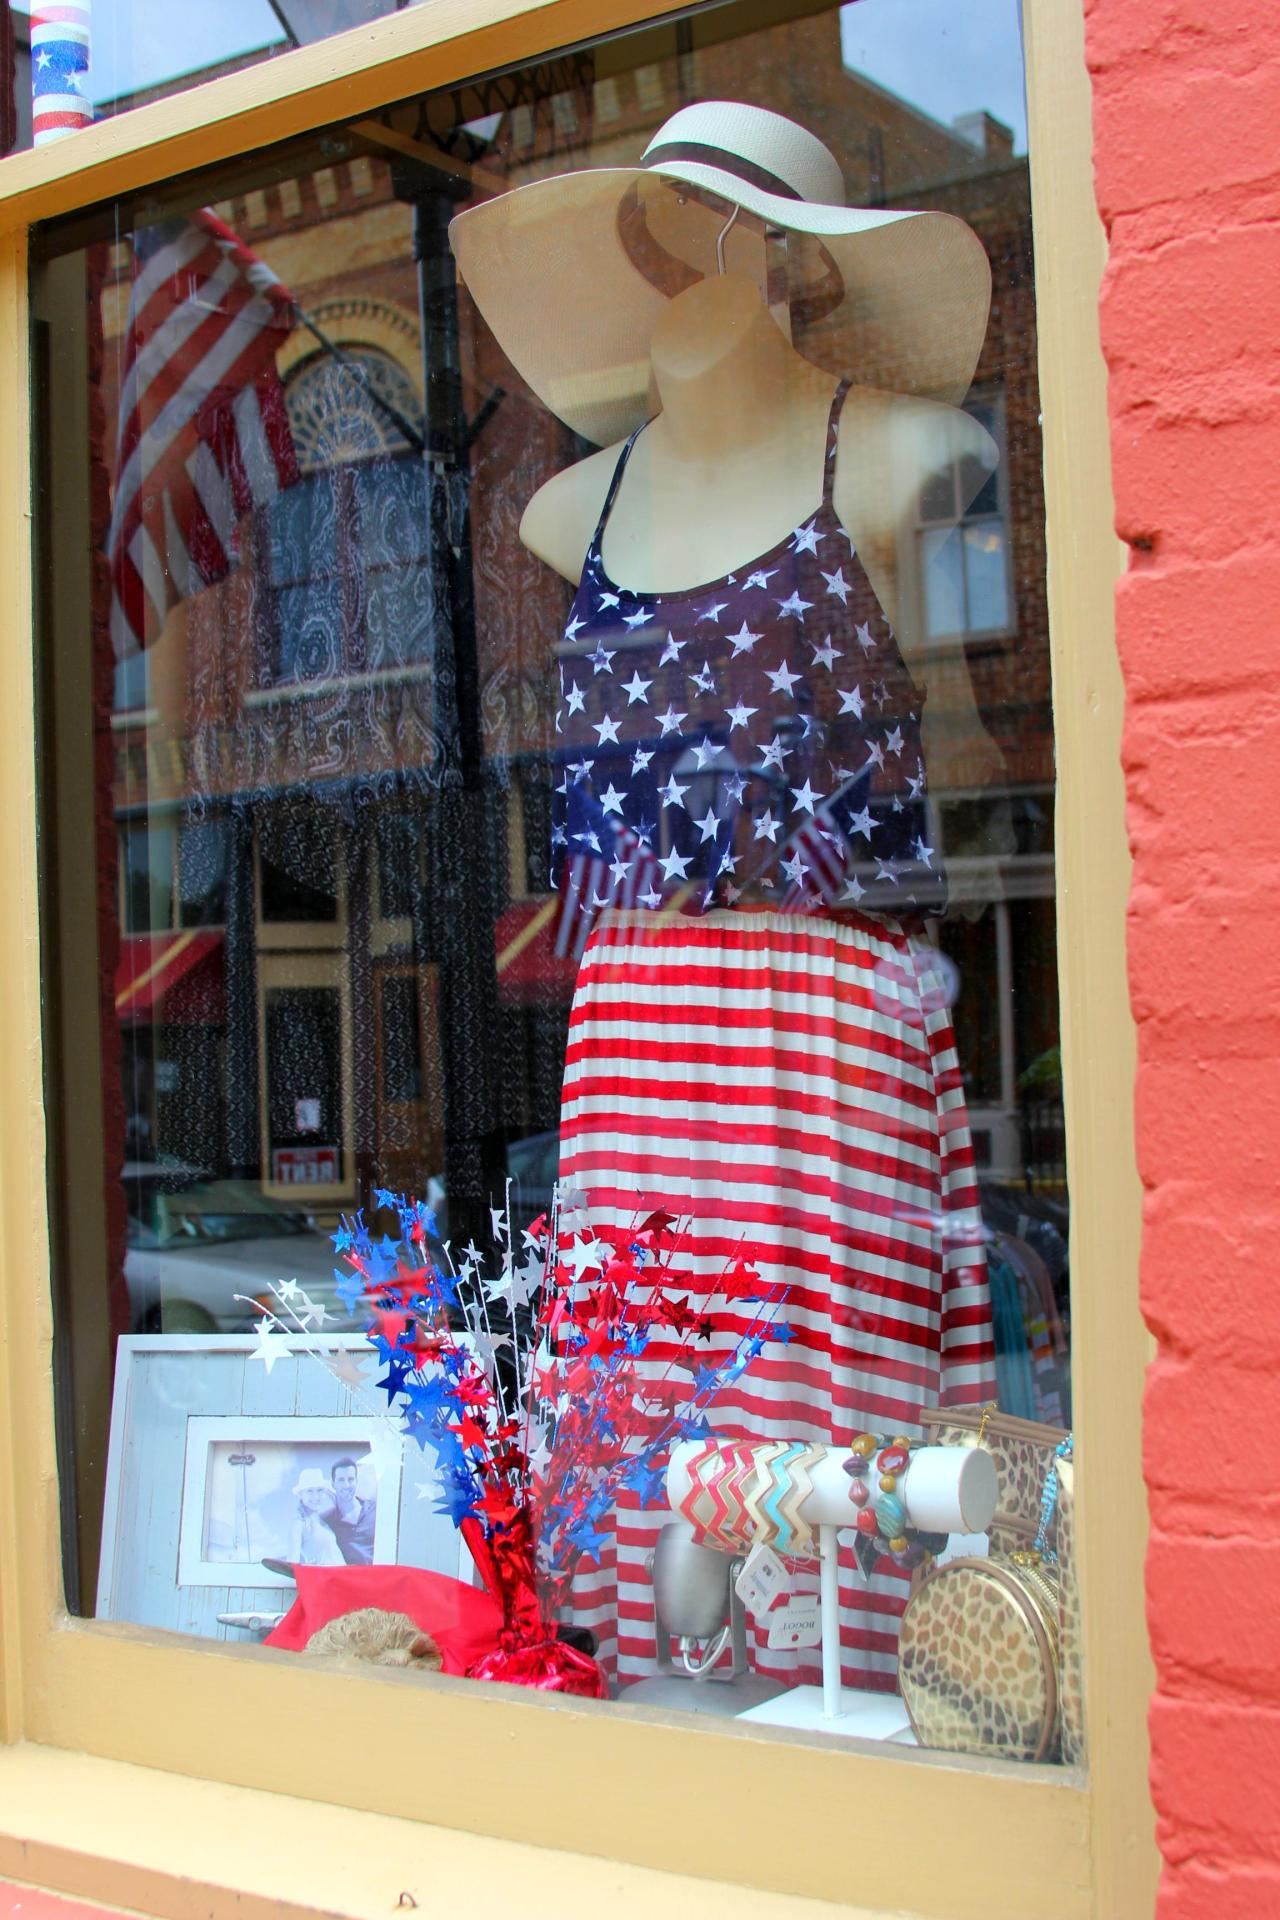 Shellz shopping window in downtown Jonesborough, Tennessee.